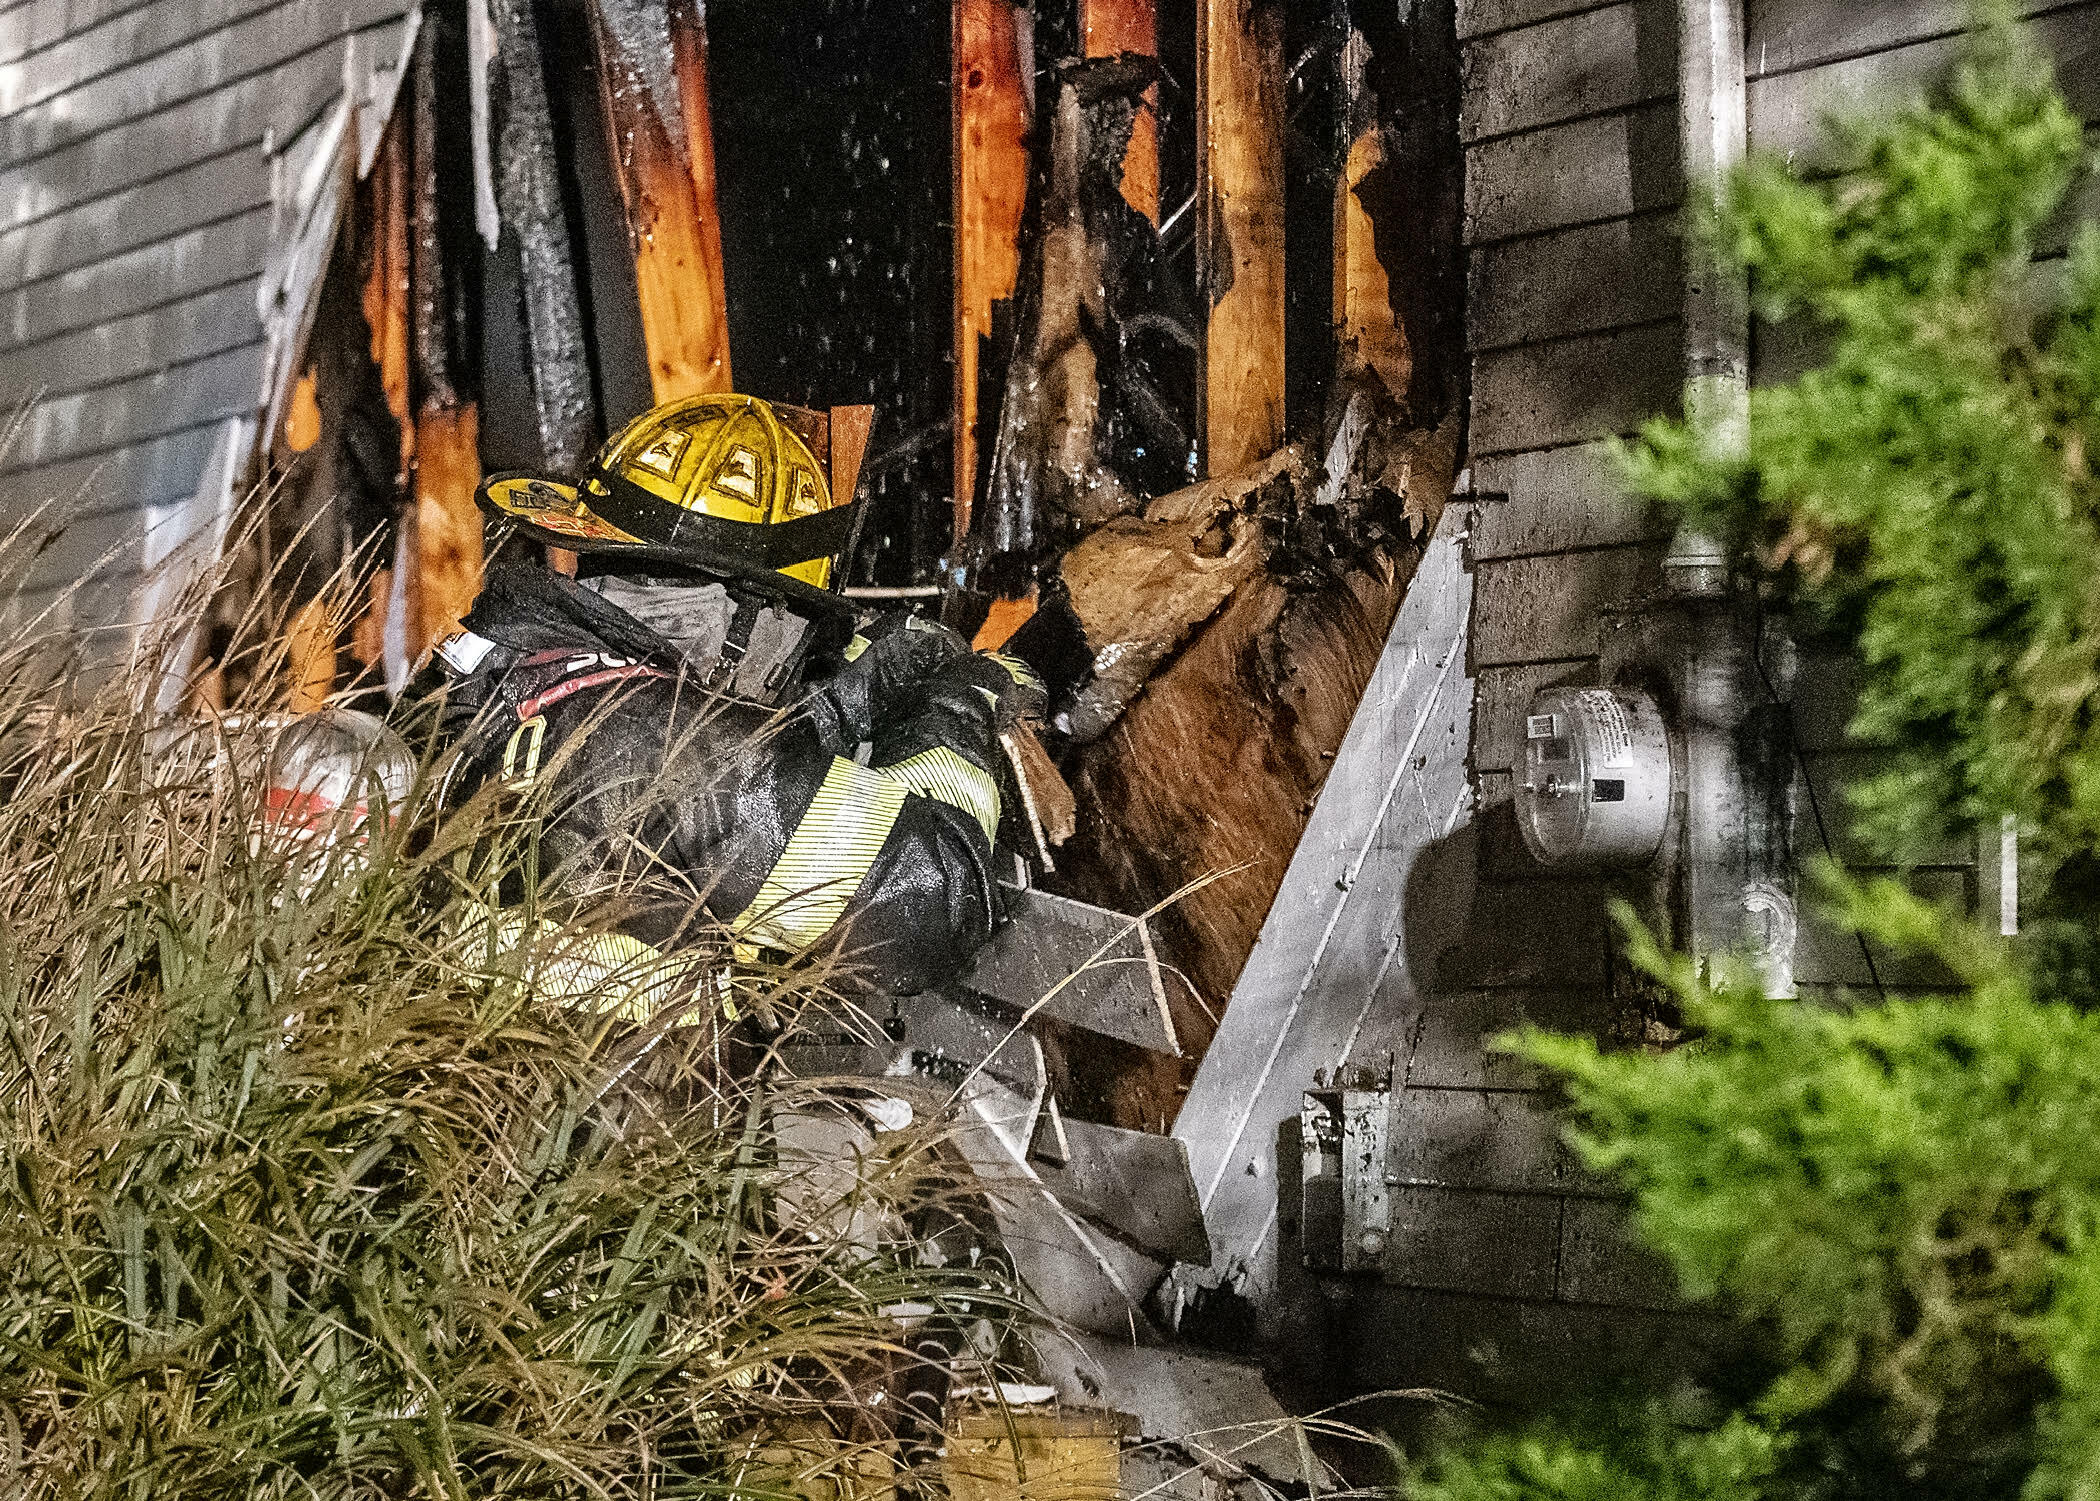 Lt. Robert Eckles, Jr. tears open a portion of exterior wall to expose residenual pockets of fire. COURTESY WESTHAMPTON BEACH FIRE DEPARTMENT